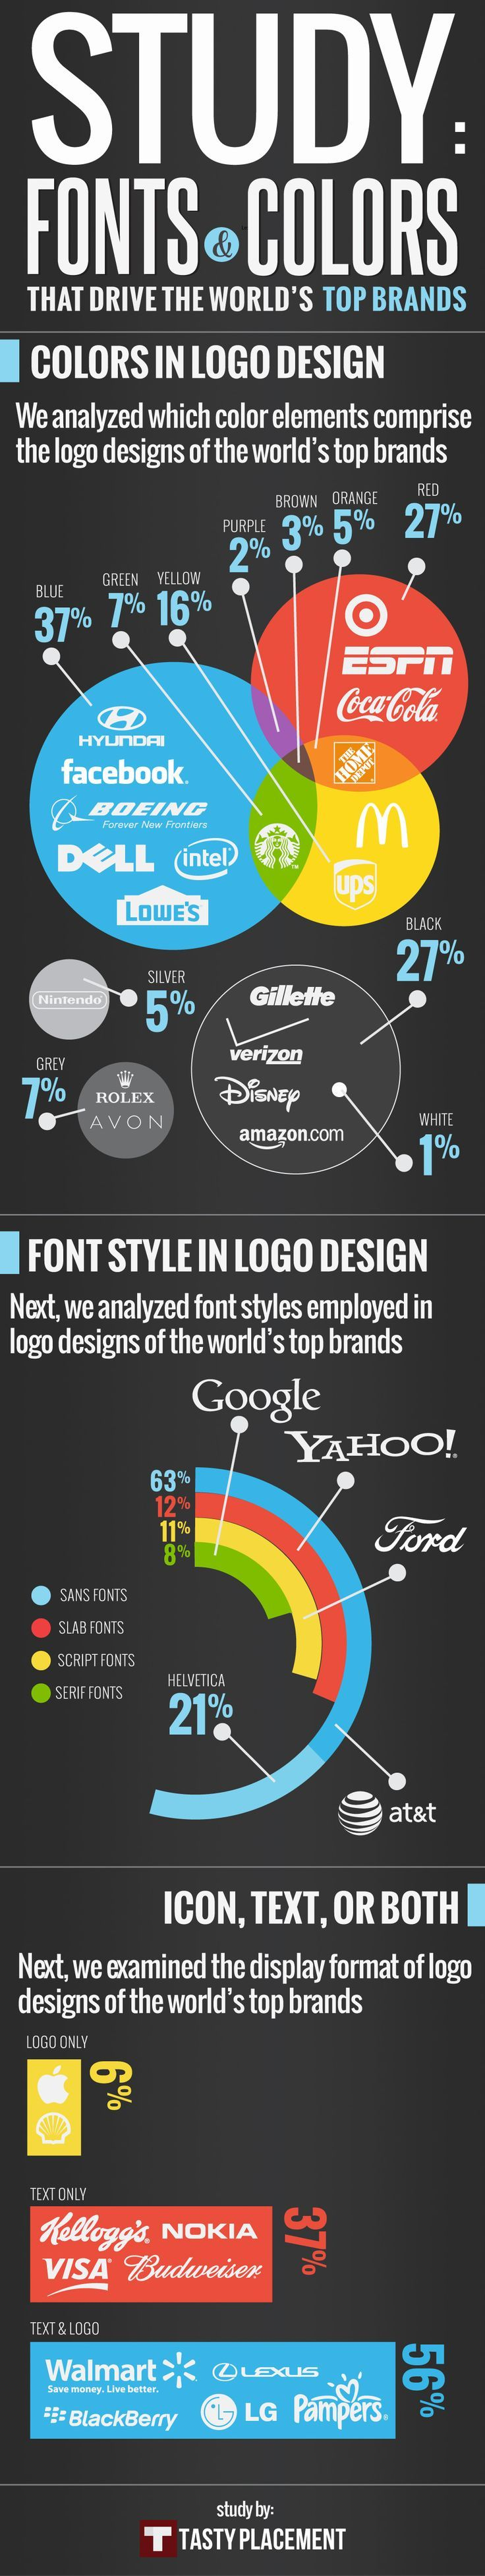 A Study in Blue Infographic of the fonts colors that drive the Worlds top brands. https://DesignTAXI.com #infographics